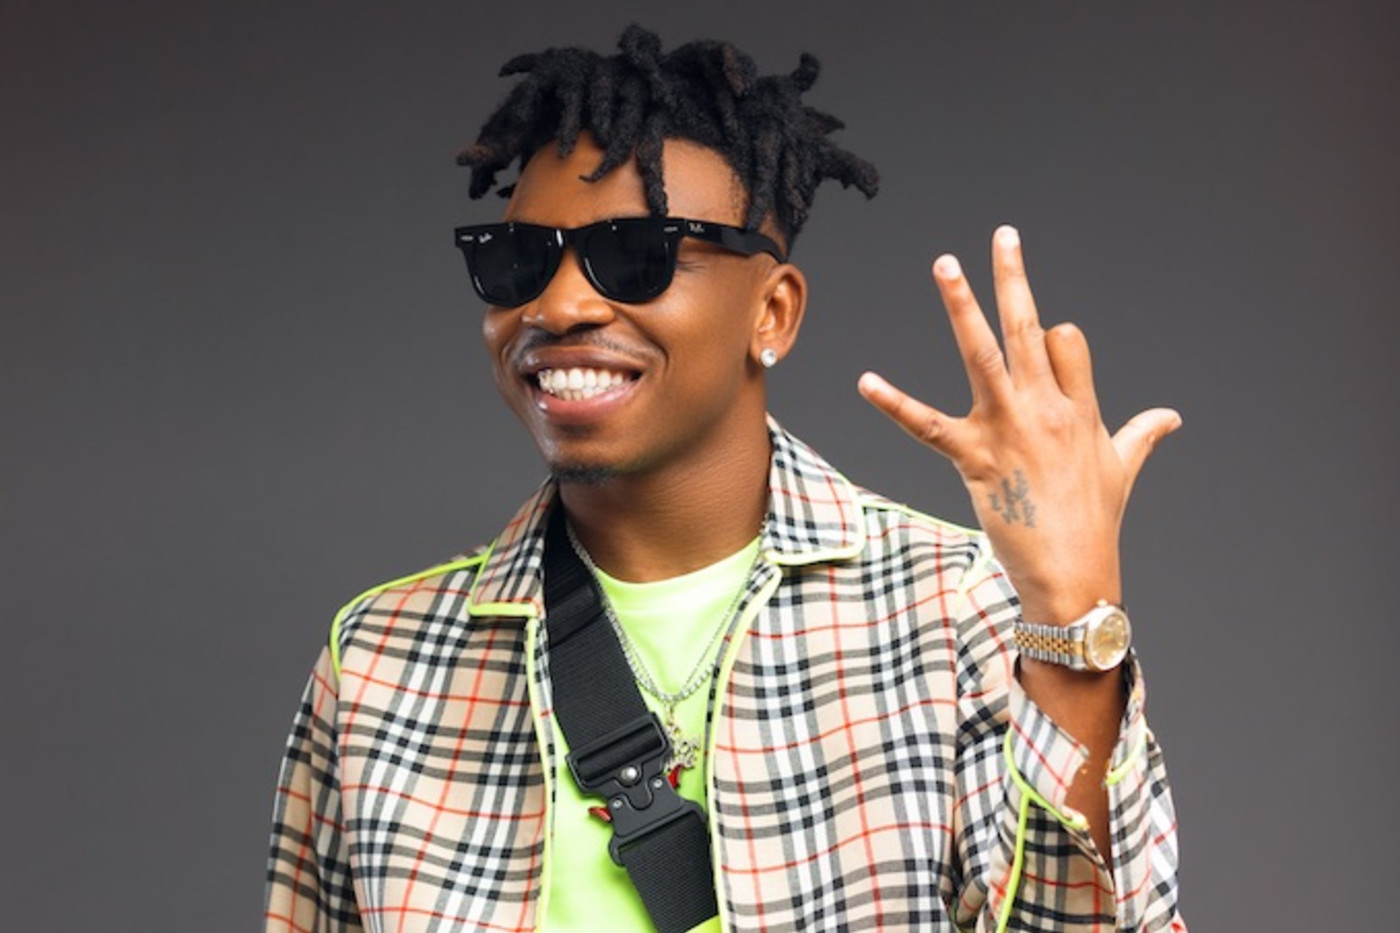 Mayorkun: There Are Doubts Over Singer's Artistry Because of His Low Streaming Numbers, But This Missing Piece Could Solve It All